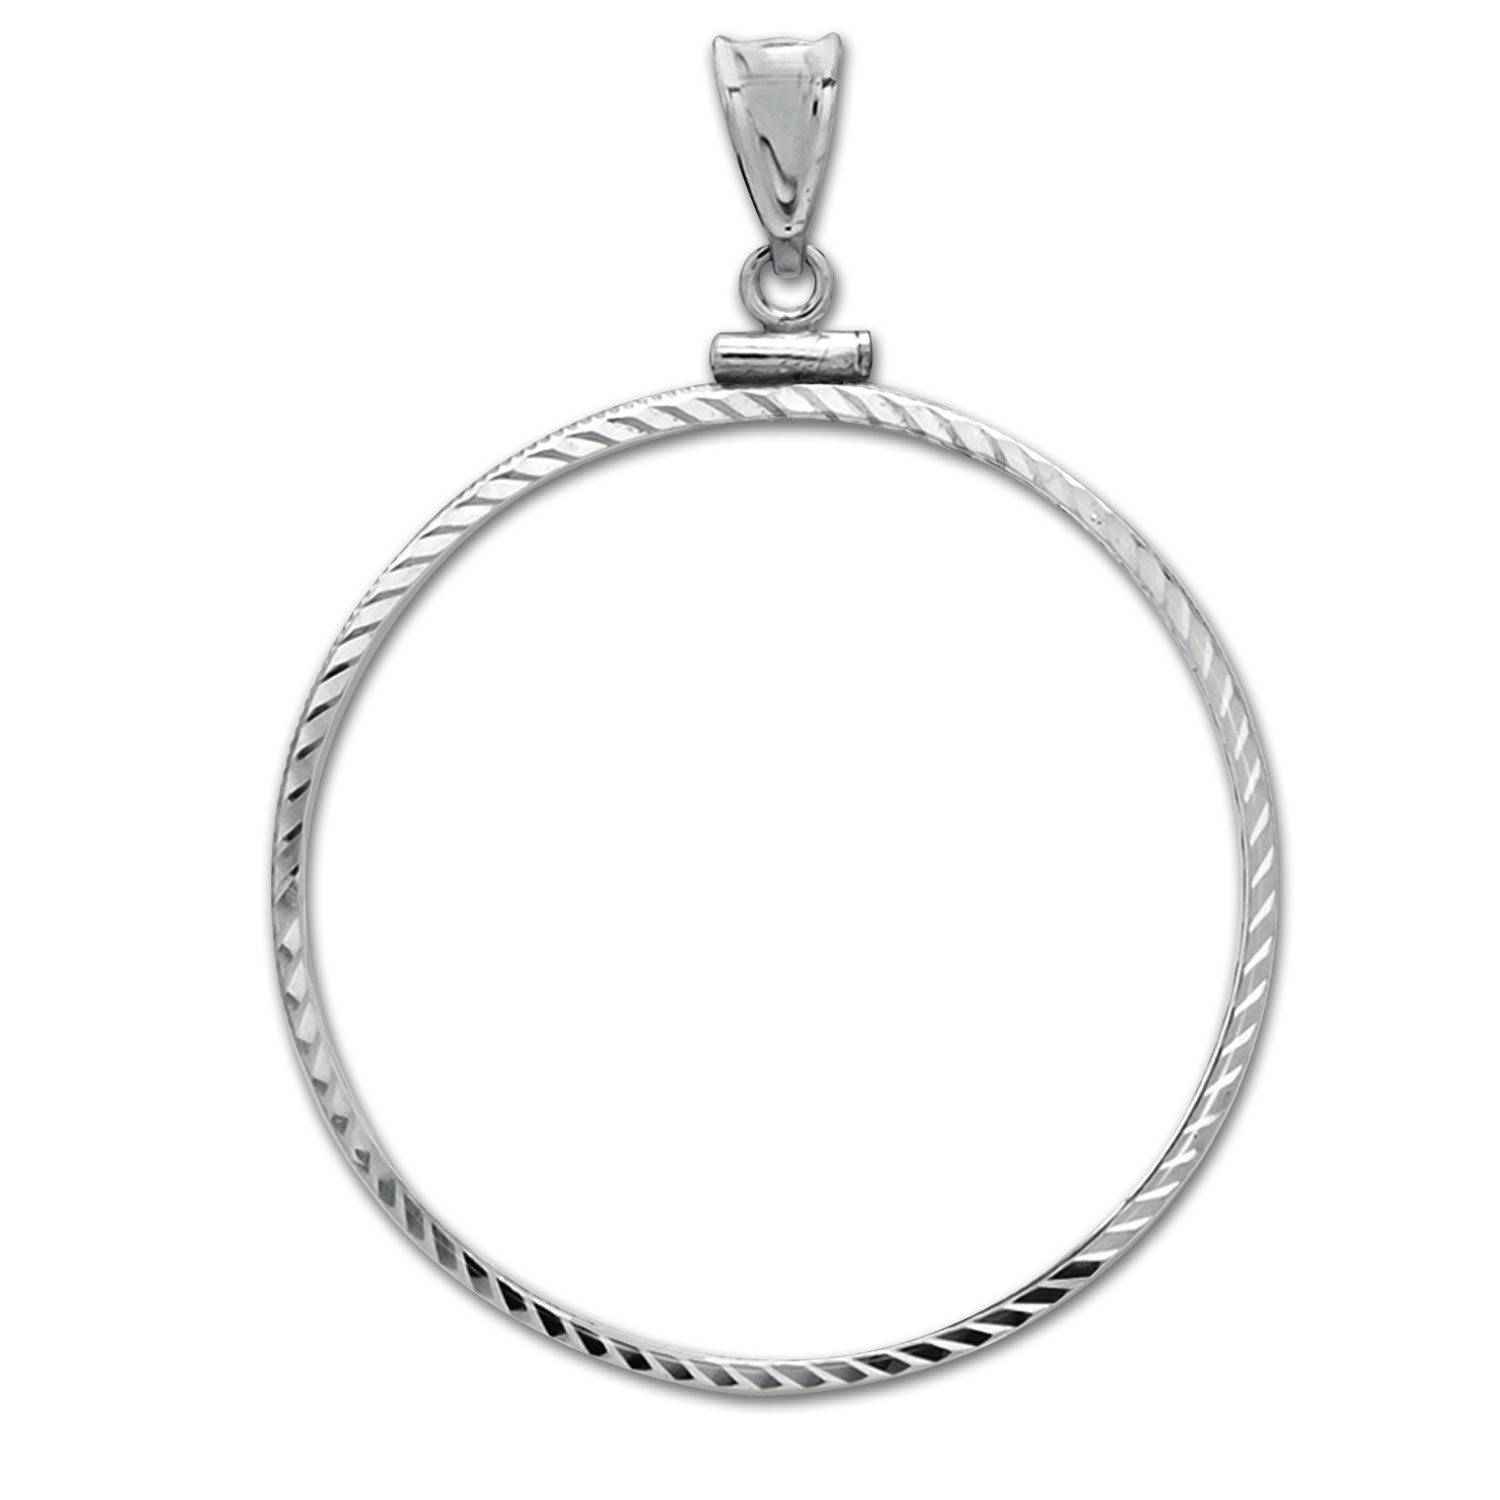 Sterling Silver Screw Top Diamond Cut Coin Bezel - 38.2 mm